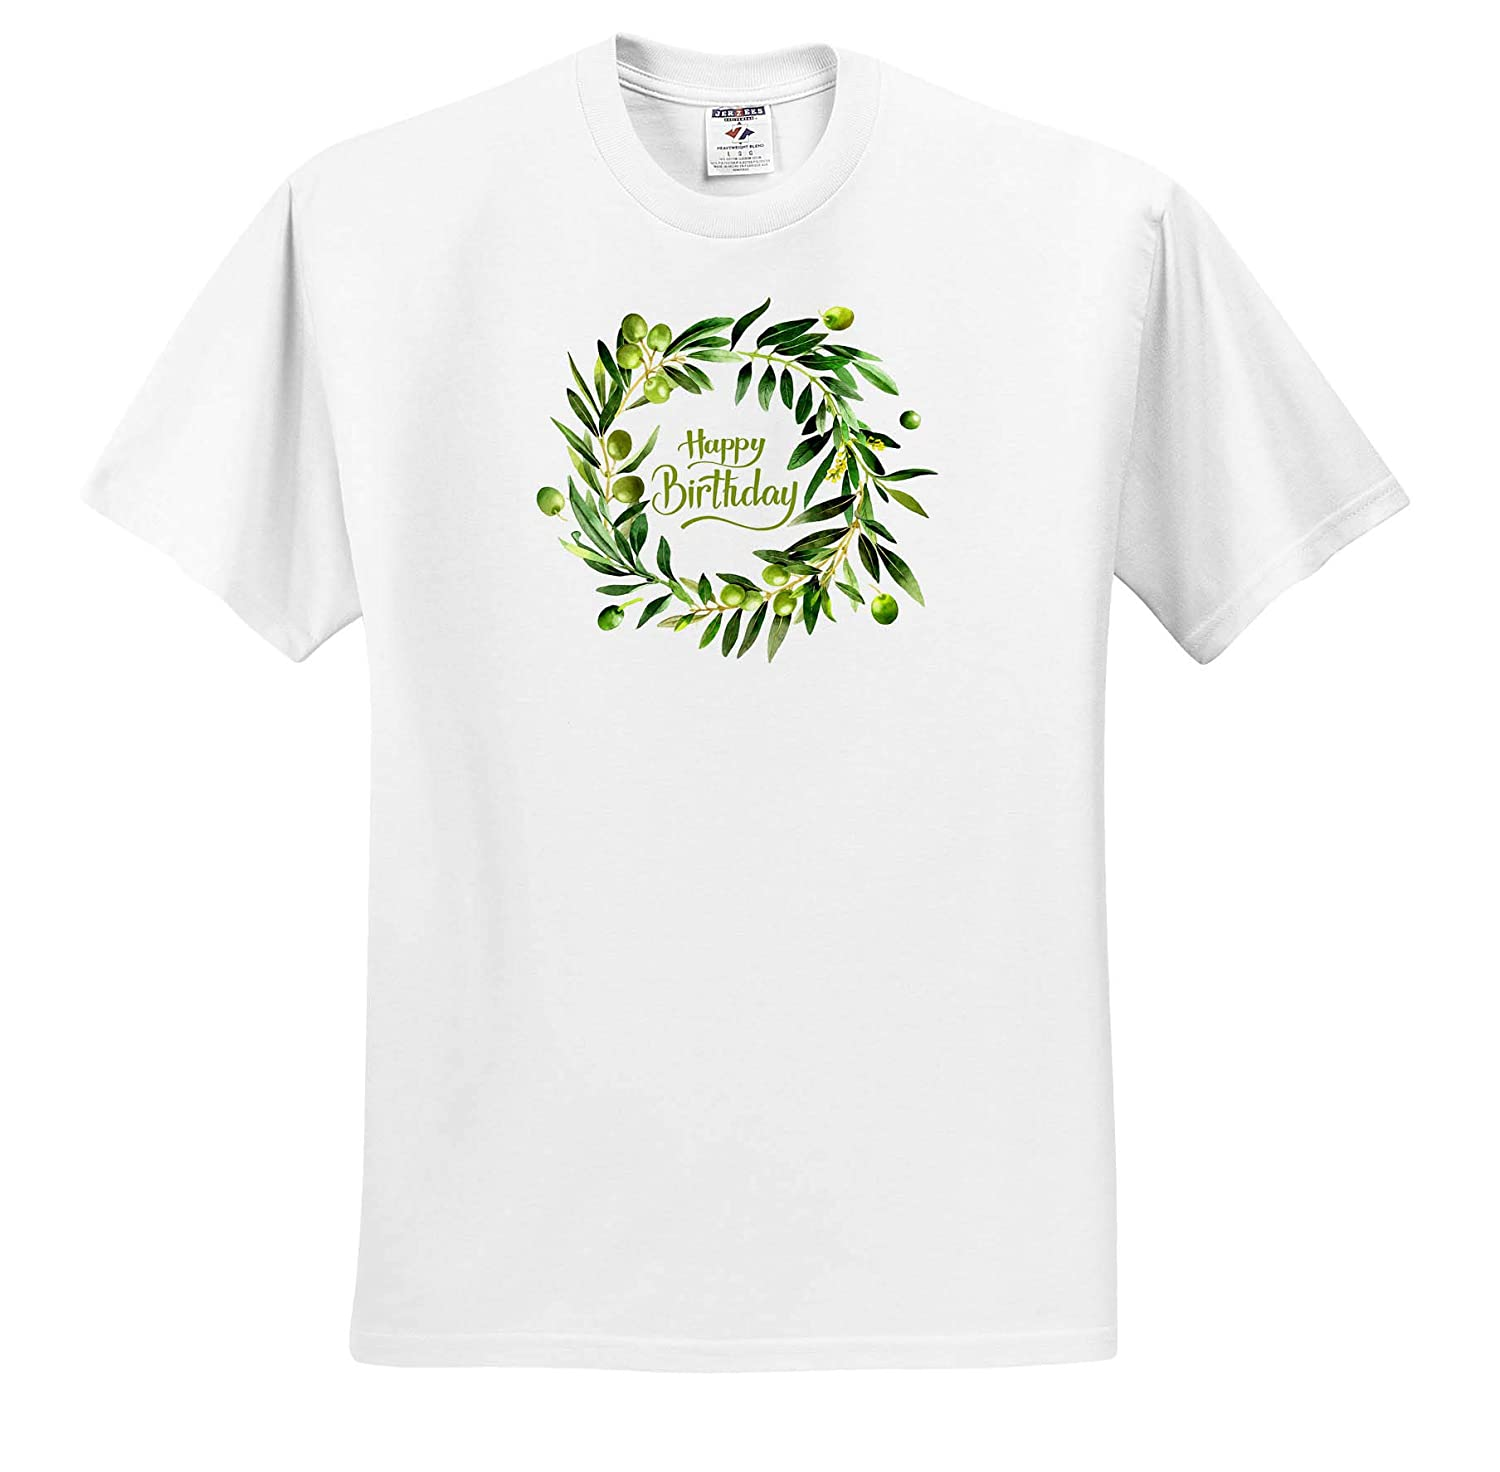 Happy Birthday 3dRose Uta Naumann Sayings and Typography T-Shirts Watercolor Summer Olives Foliage Wreath Typography